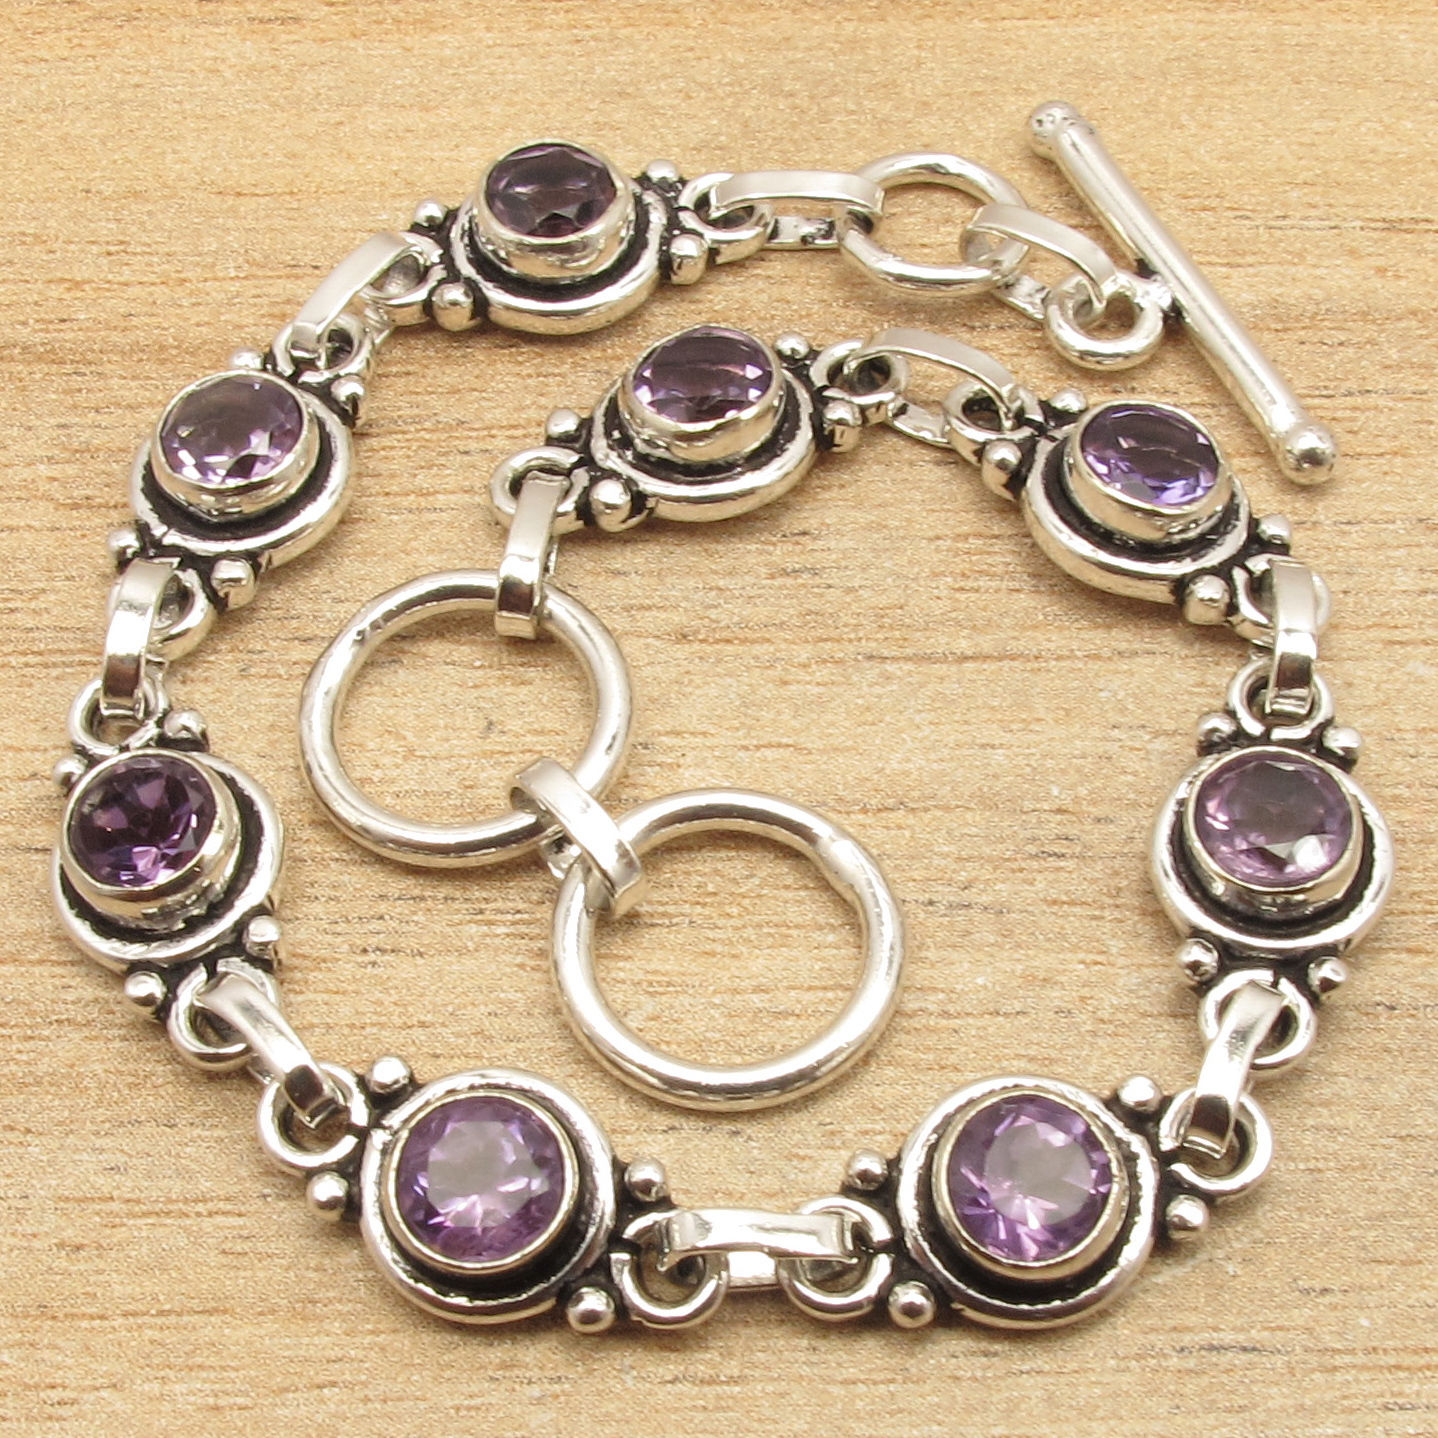 Natural AMETHYSTS Gems Delicate Jewellery Bracelet 7 1/2 ! Silver Plated